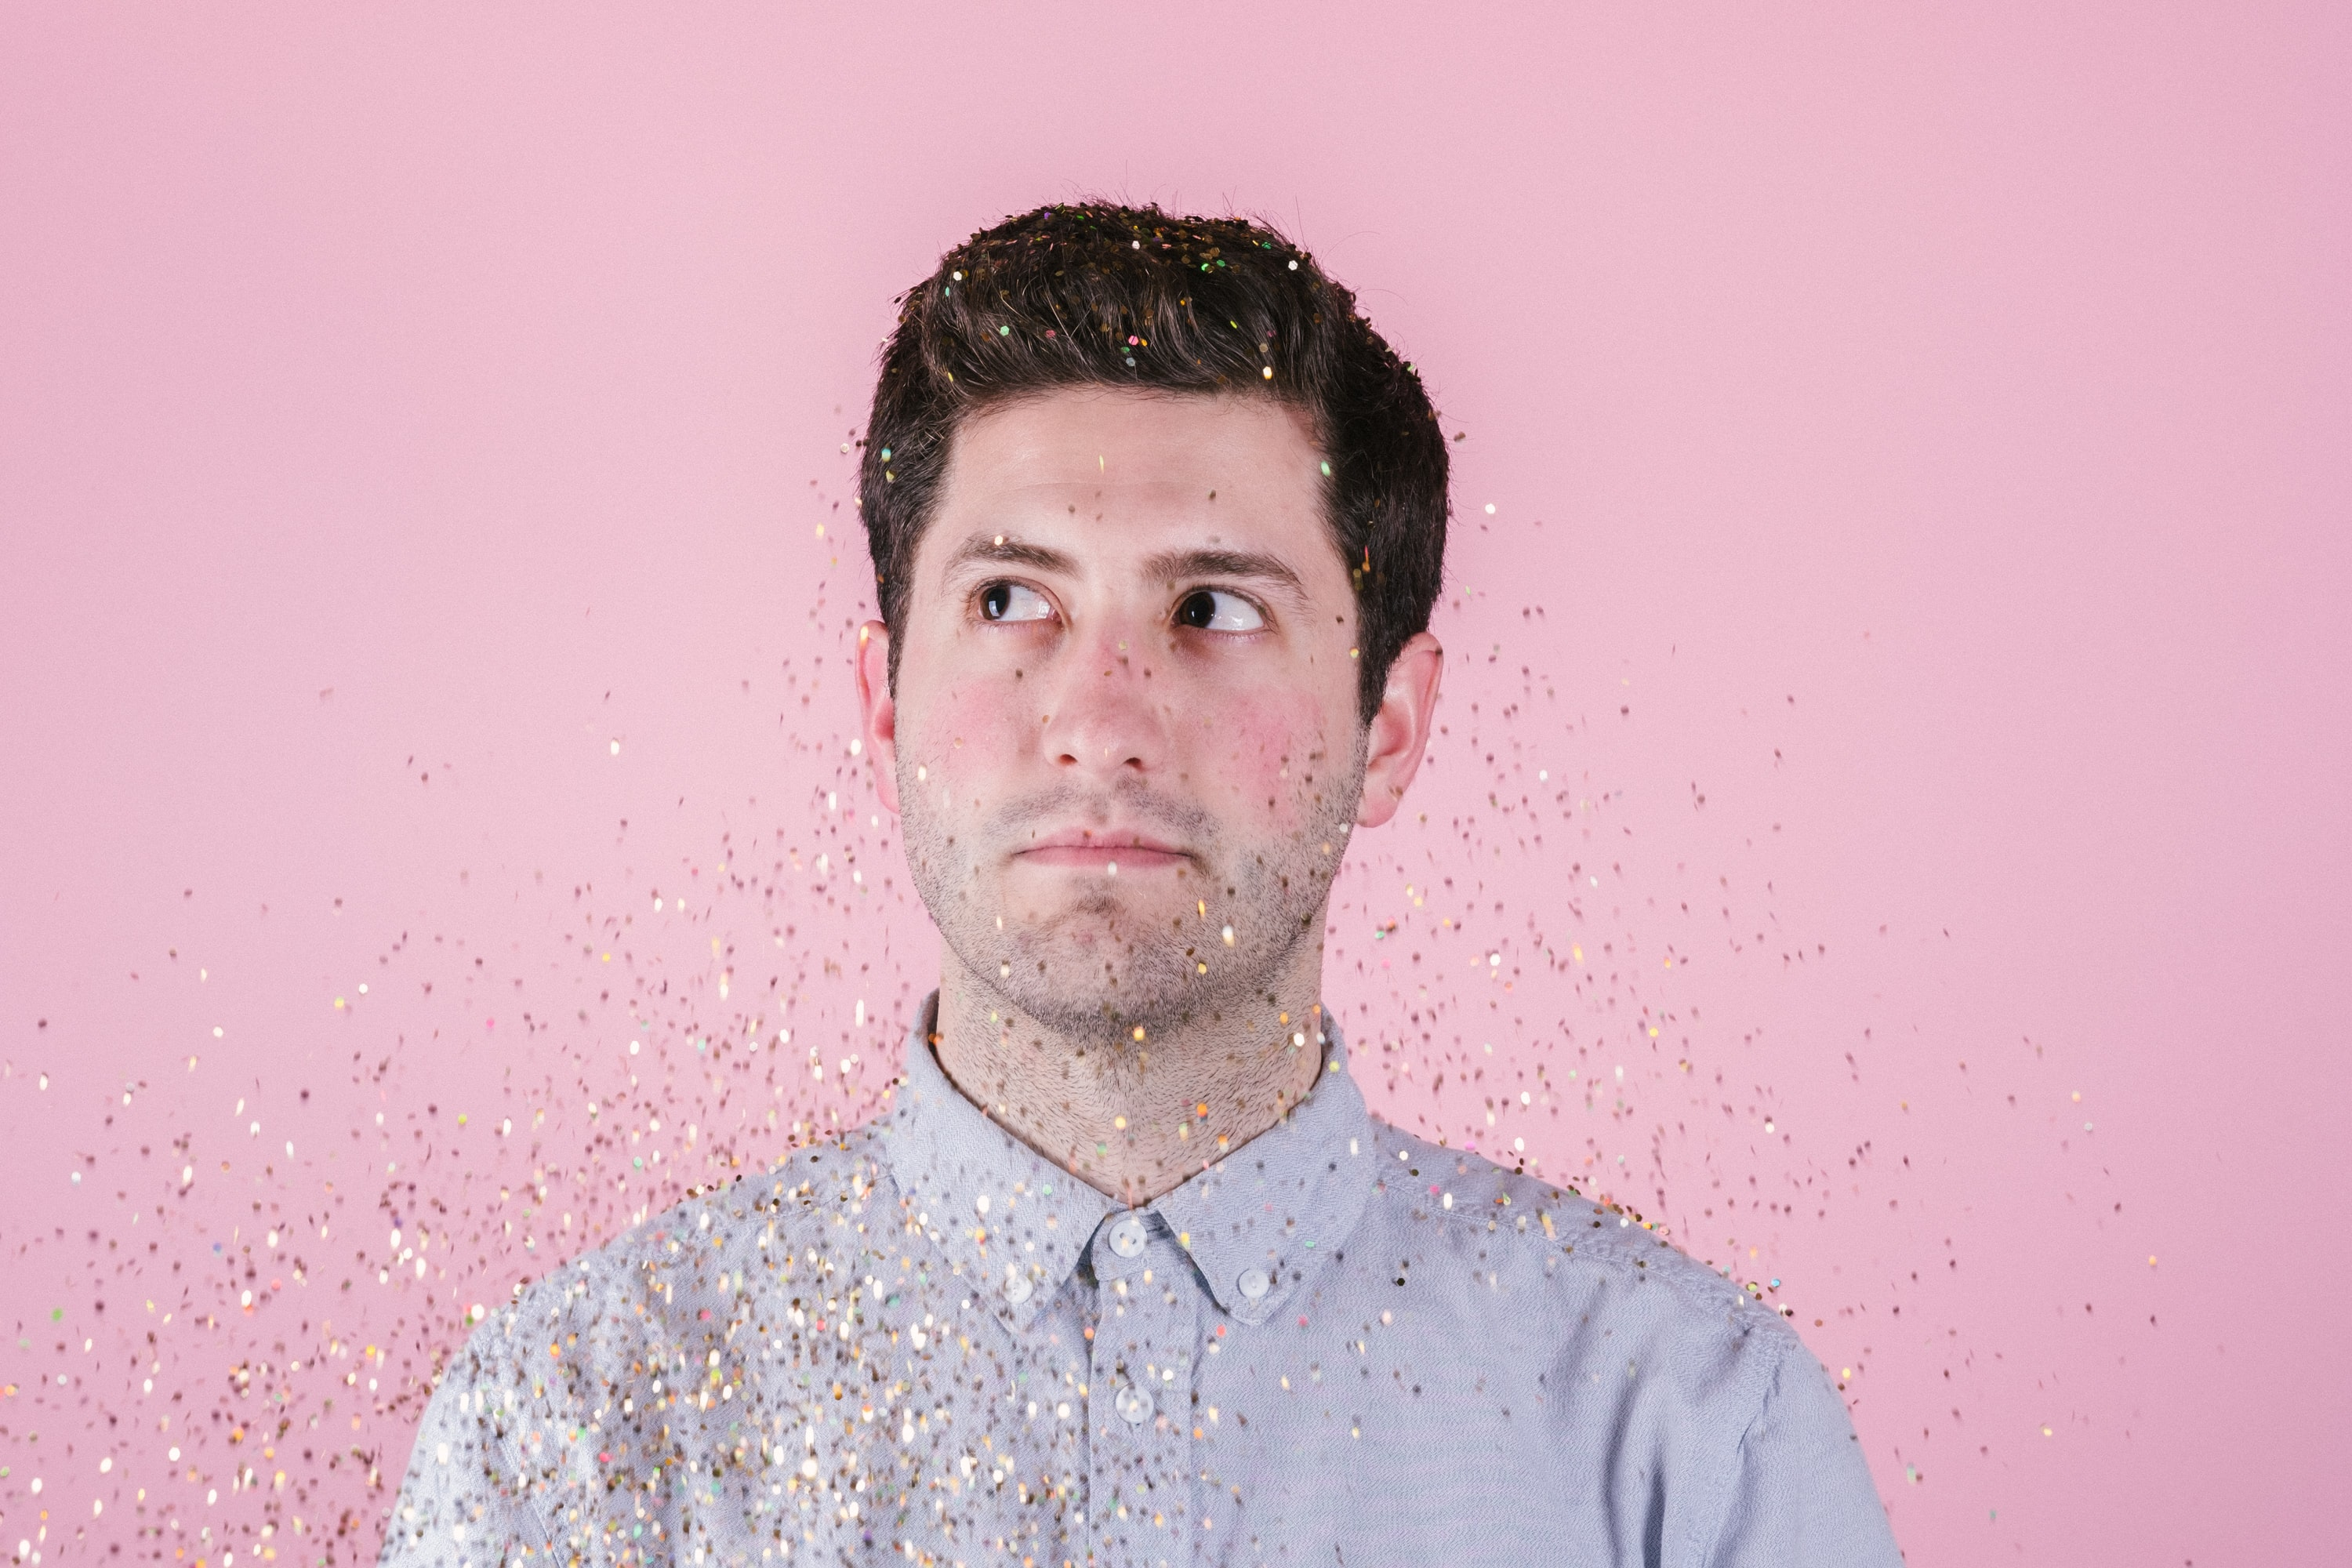 man wearing gray polo shirt behind pink background close-up photo